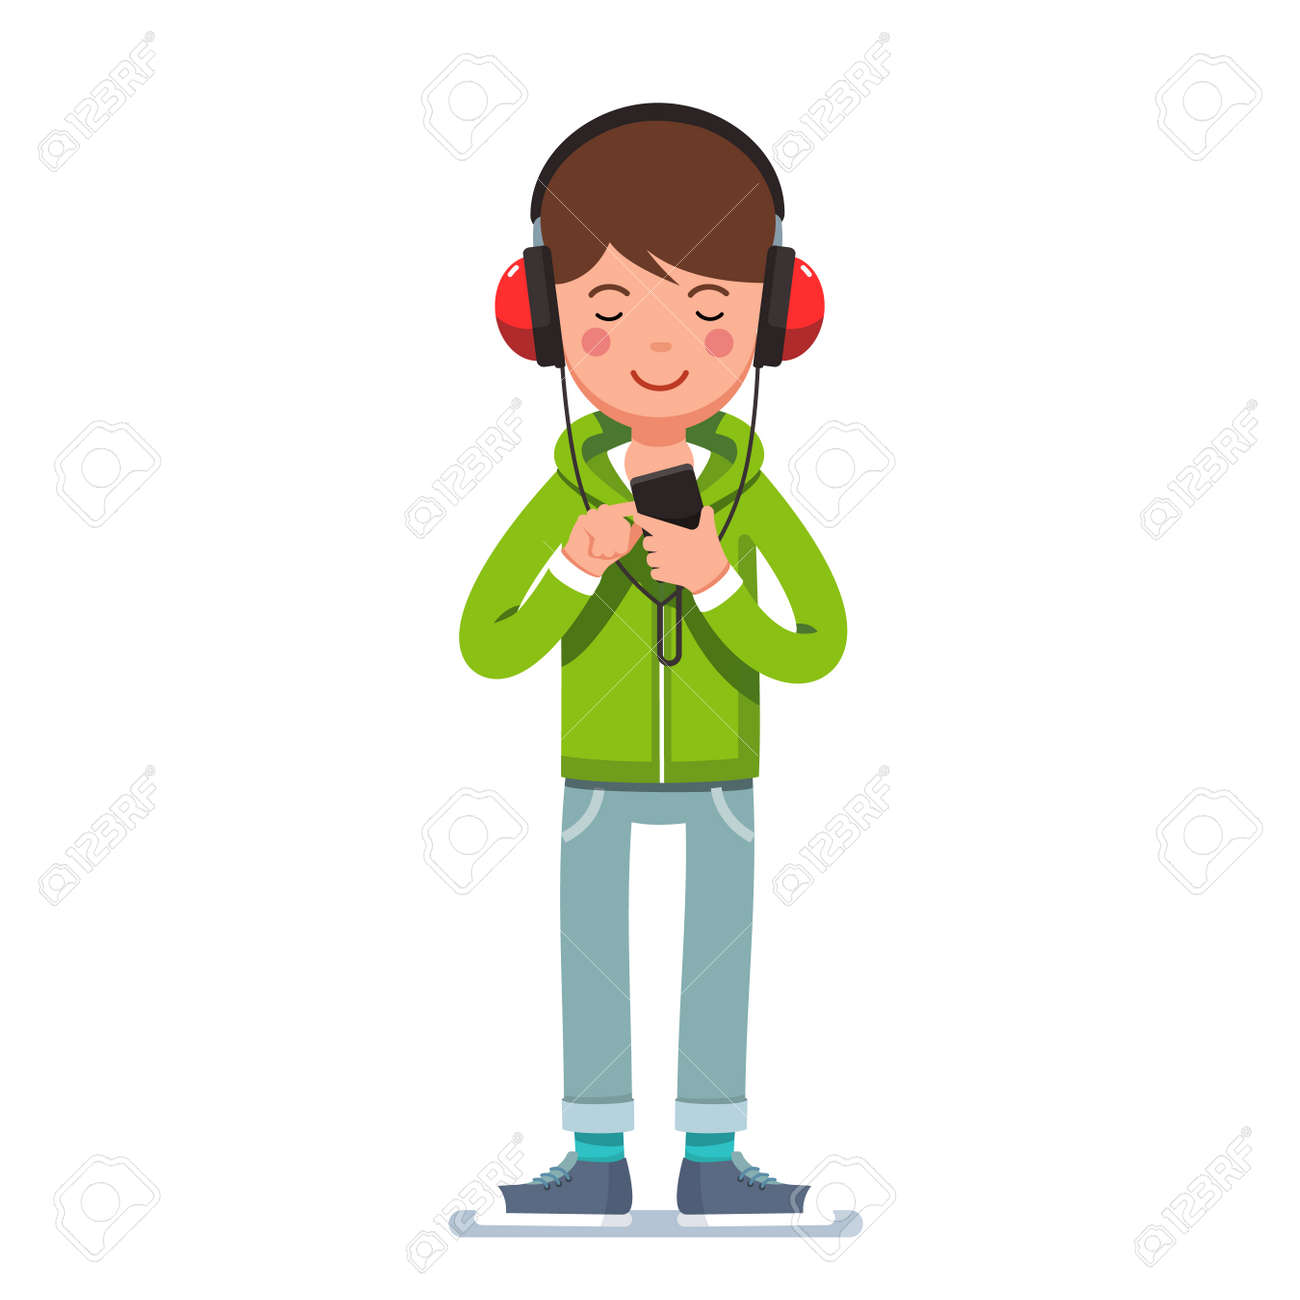 teen boy in headphones listening to music on phone royalty free